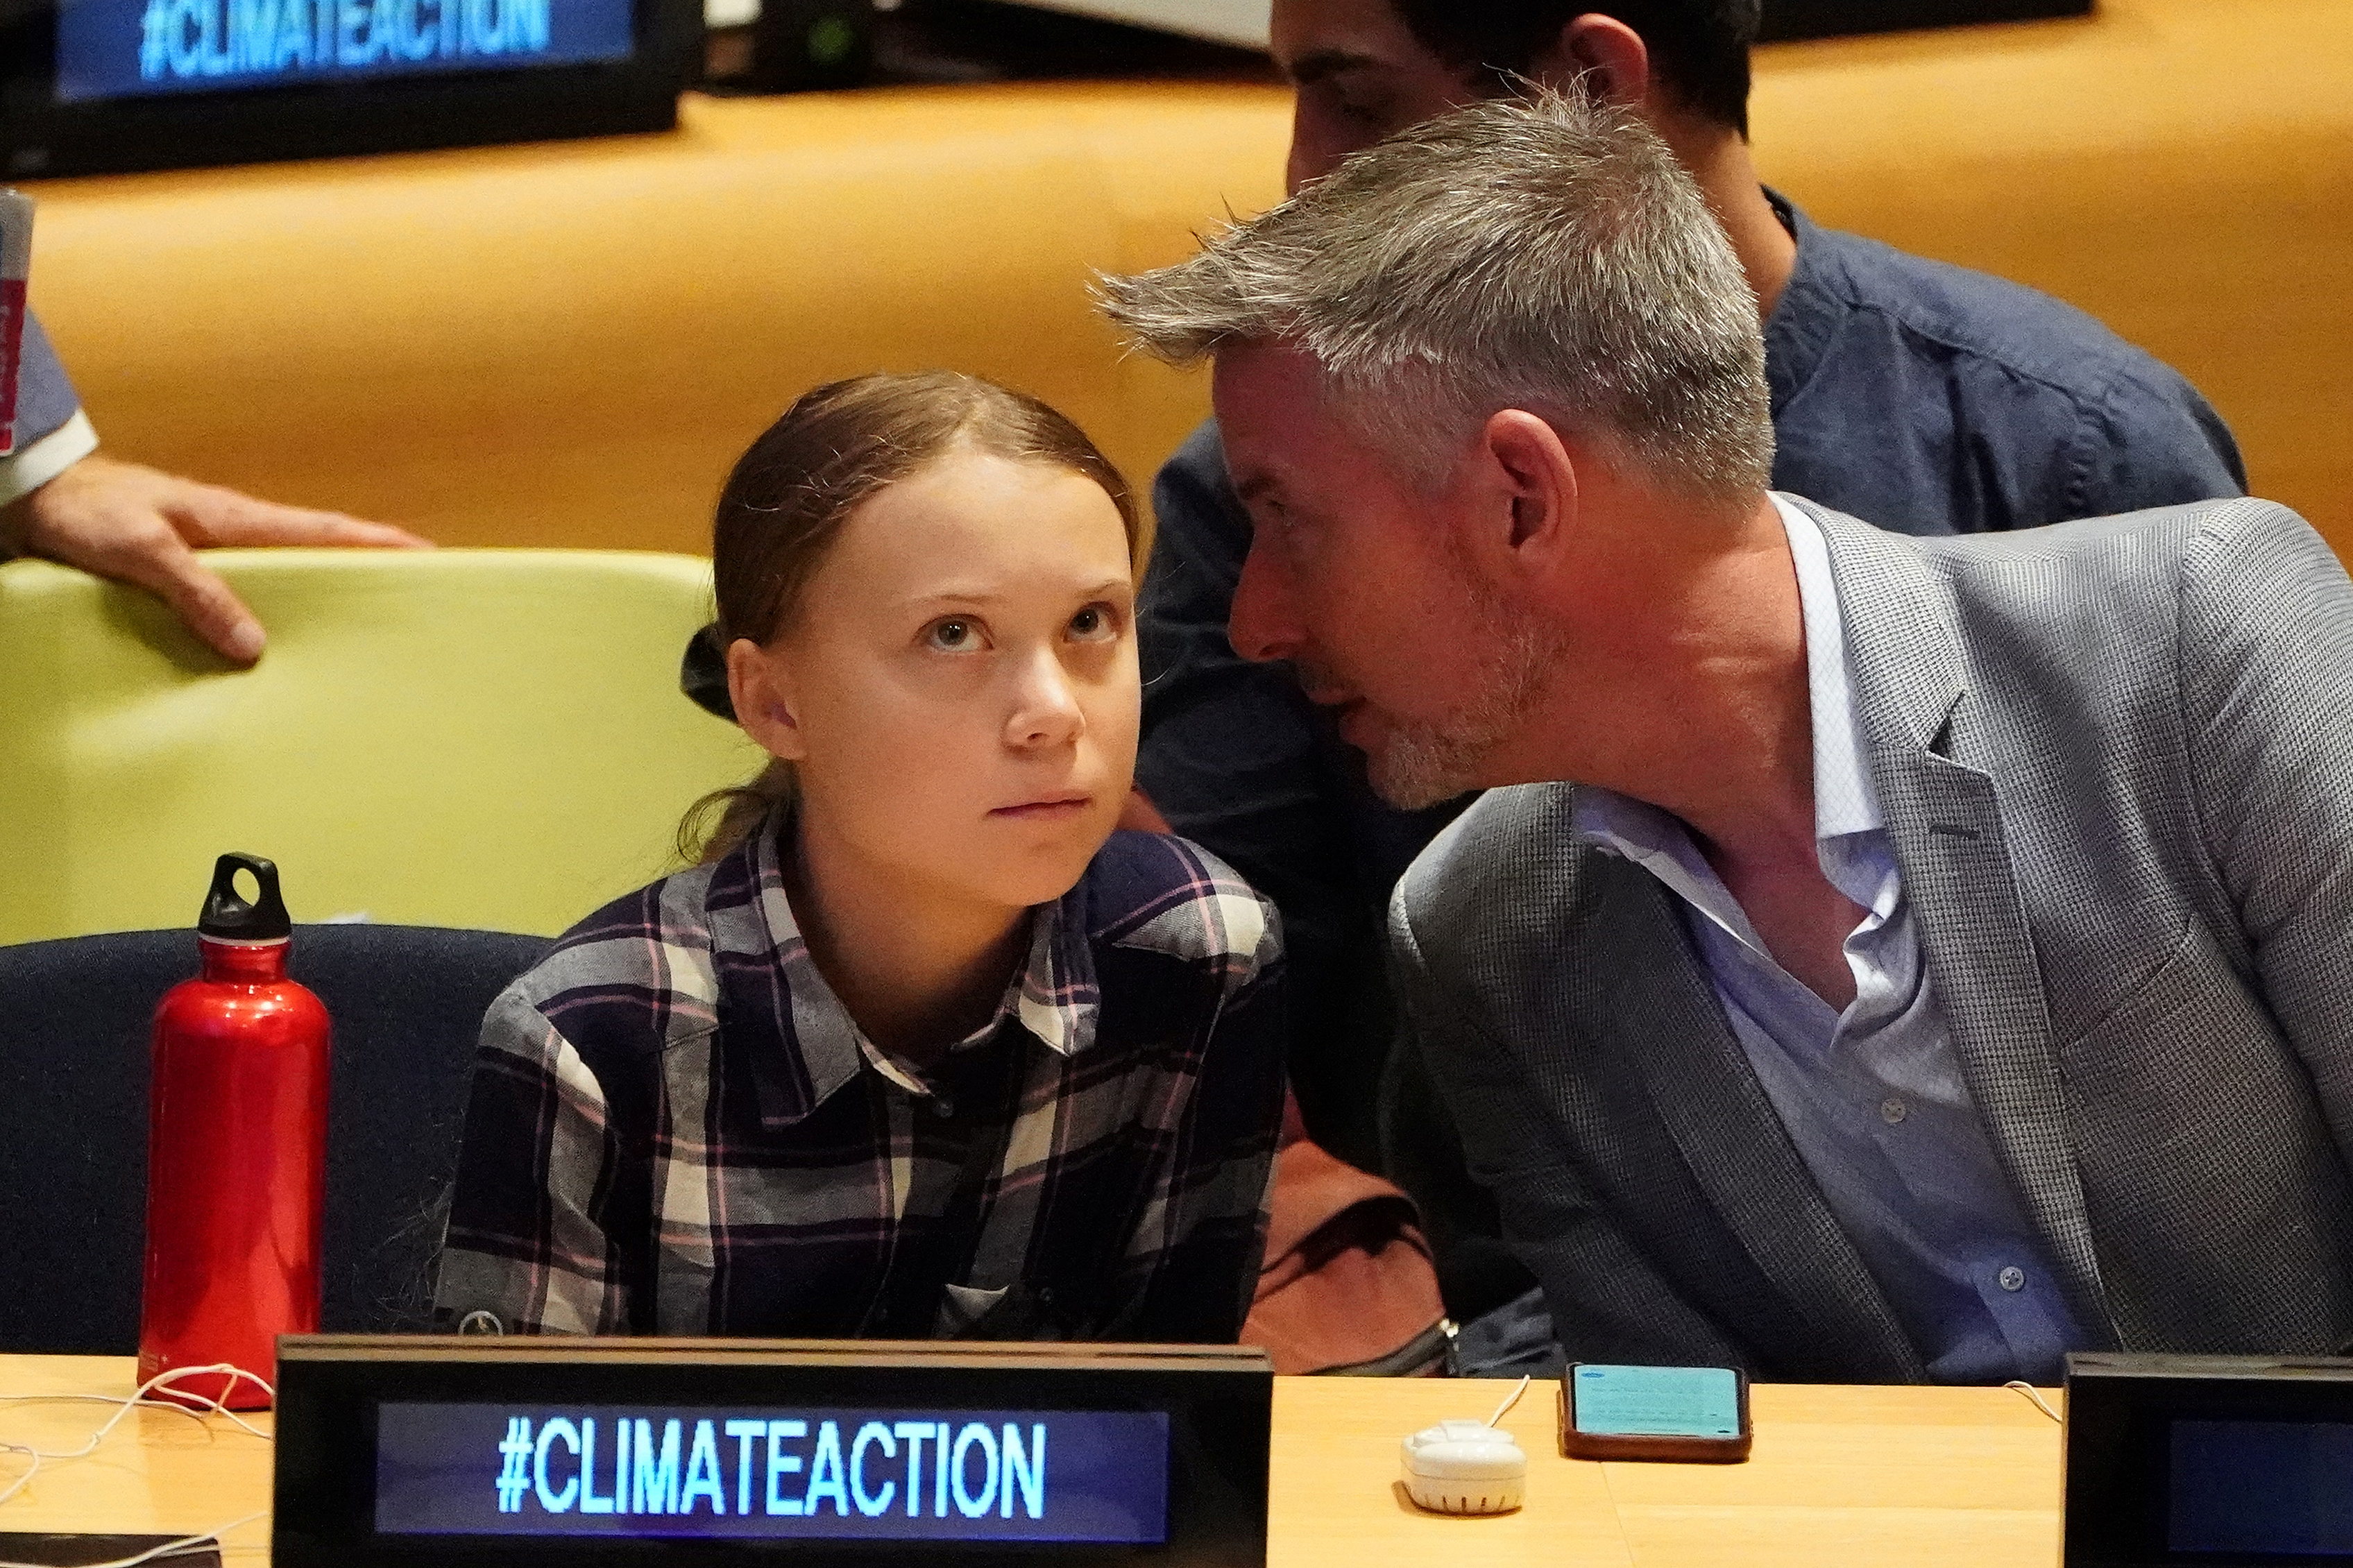 Swedish environmental activist Greta Thunberg appears at the Youth Climate Summit at United Nations HQ in the Manhattan borough of New York, New York, U.S., September 21, 2019. REUTERS/Carlo Allegri